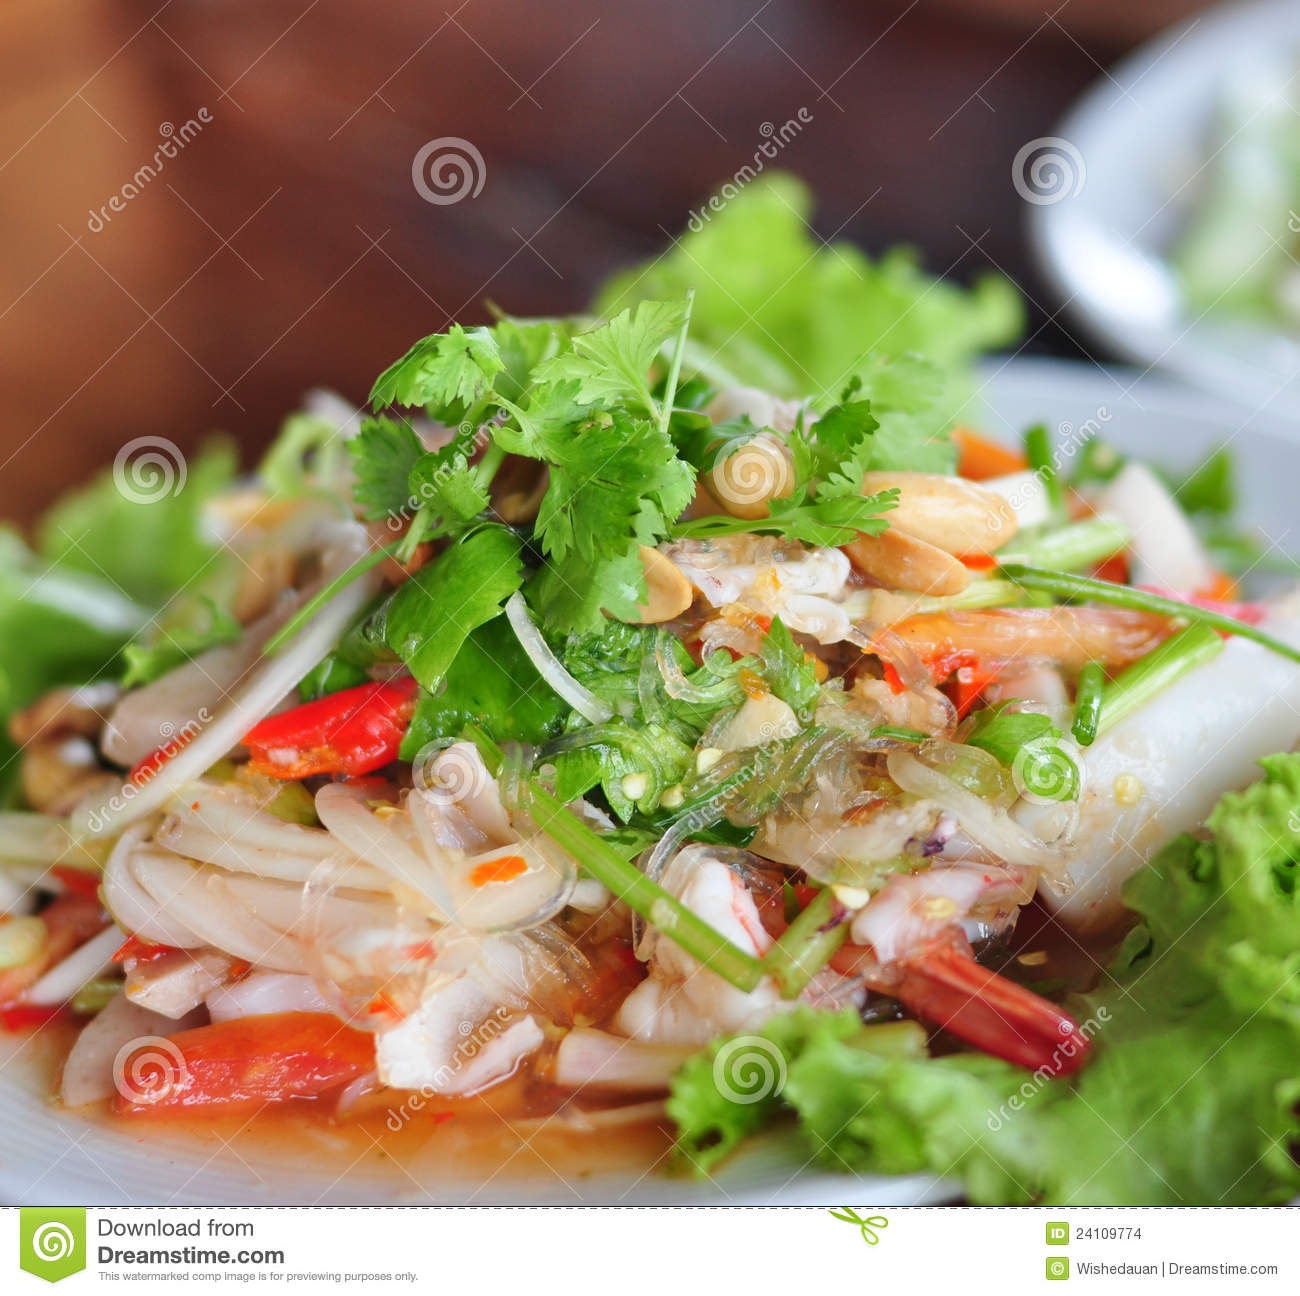 Stock Images: Thai food salad seafood shrimp and squid delicious